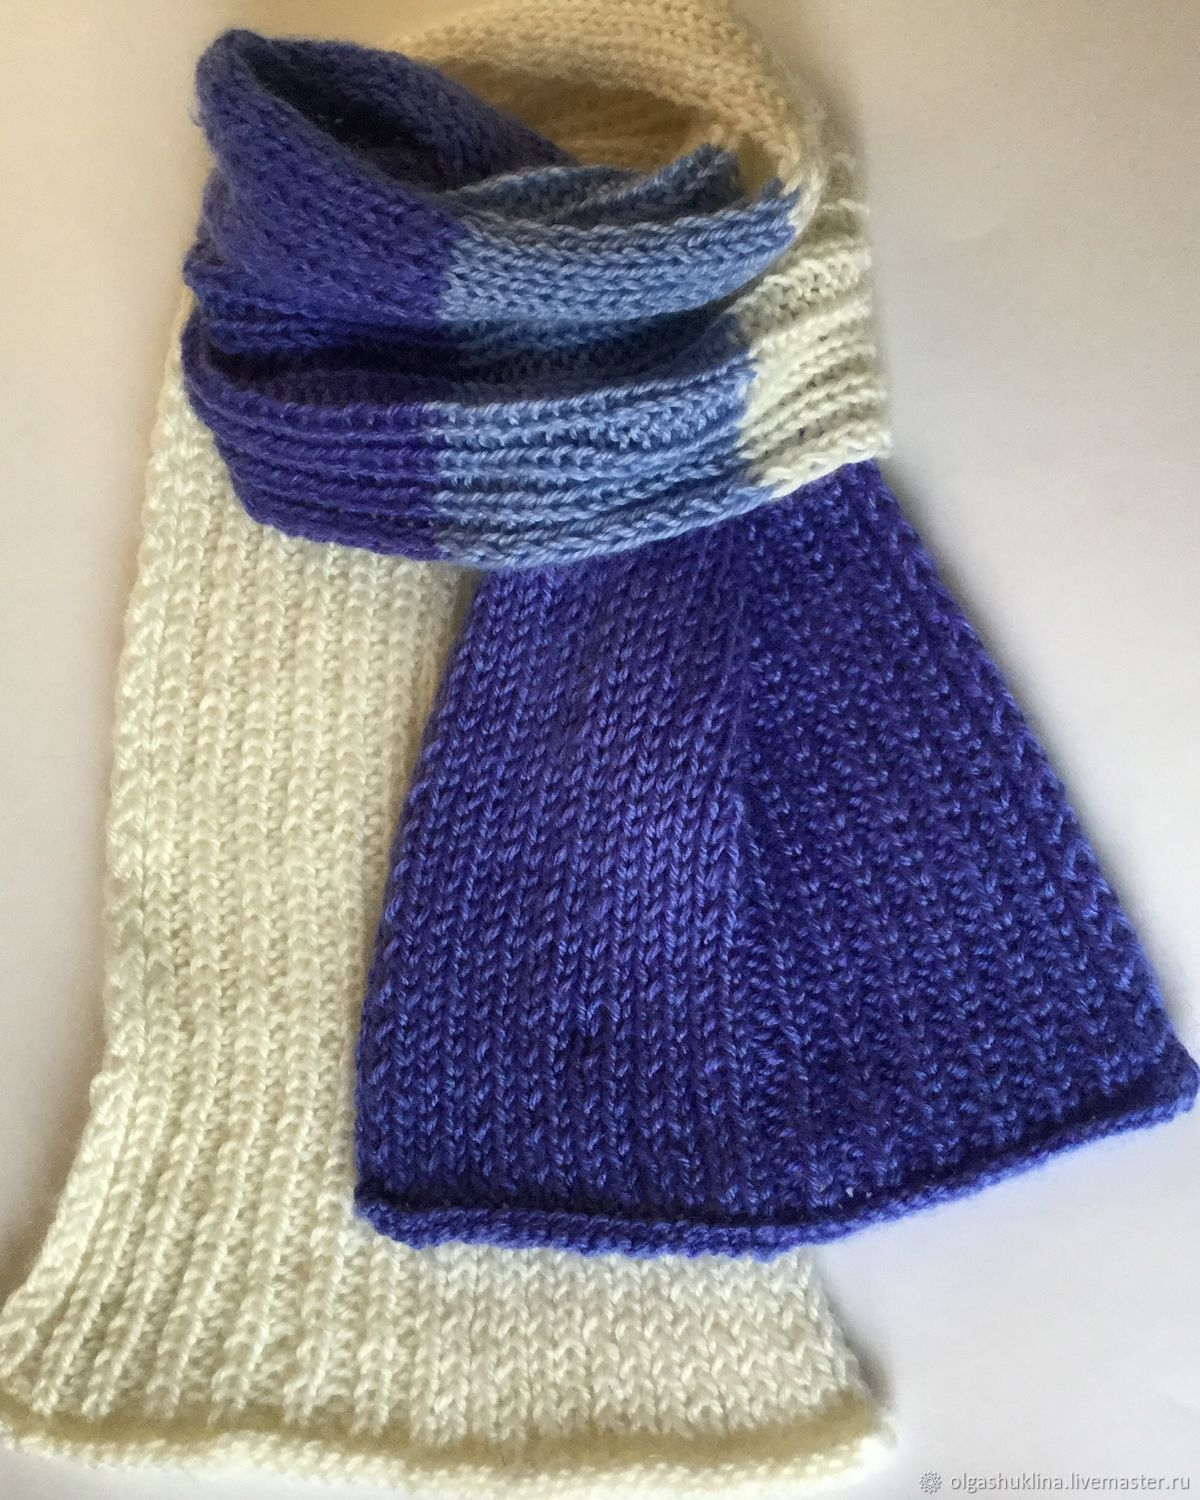 Knitted Scarf For The Spring Cashmere Blue White Blue Shop